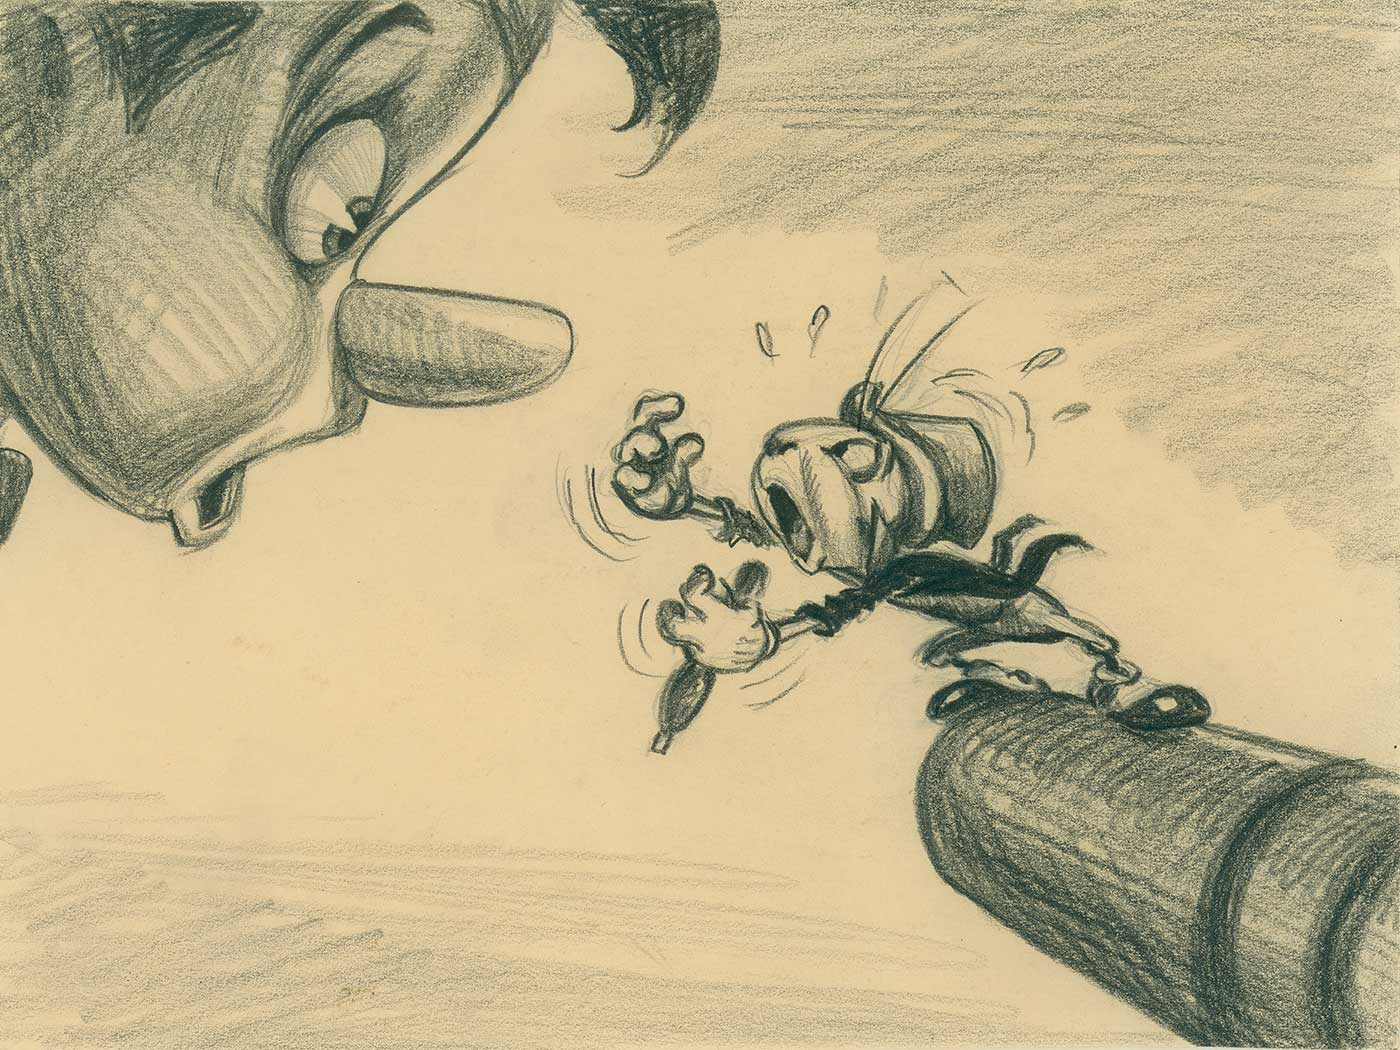 Disney Studio Artist, Pinocchio visual development, pencil on paper; collection of The Walt Disney Family Foundation, gift of Ron and Diane Miller, © Disney